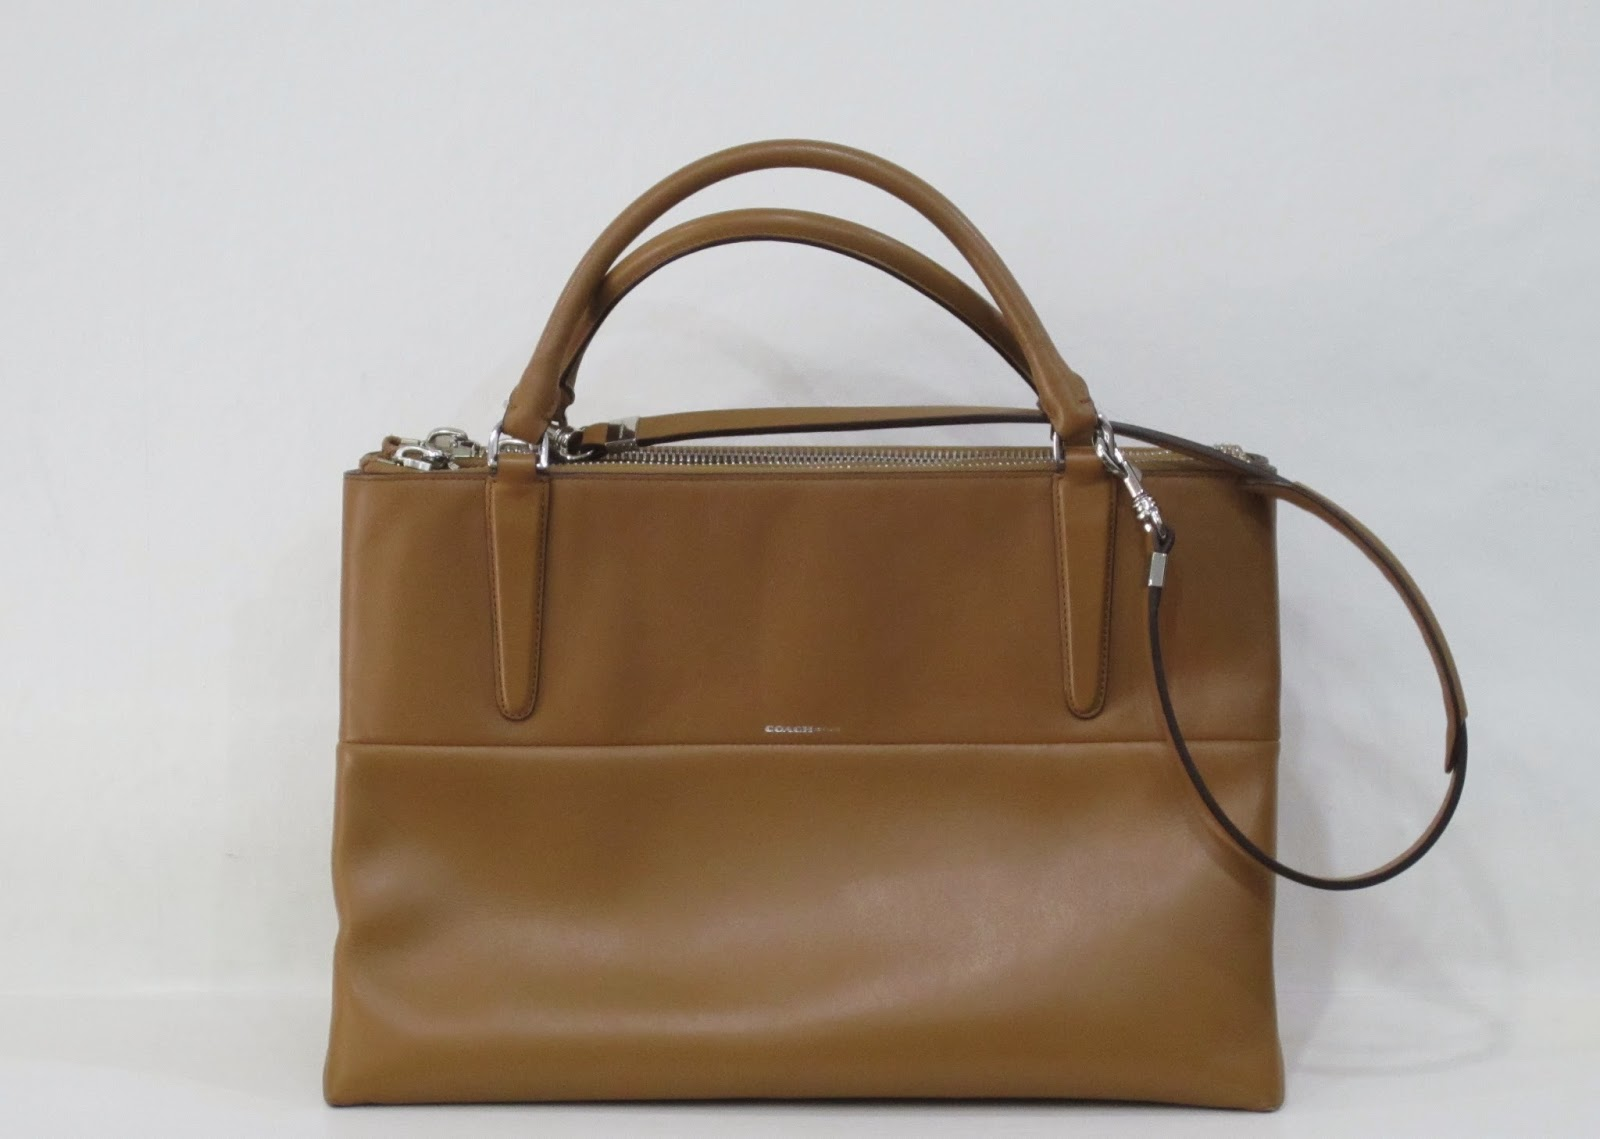 Coach Caramel Leather 'Borough' Bag